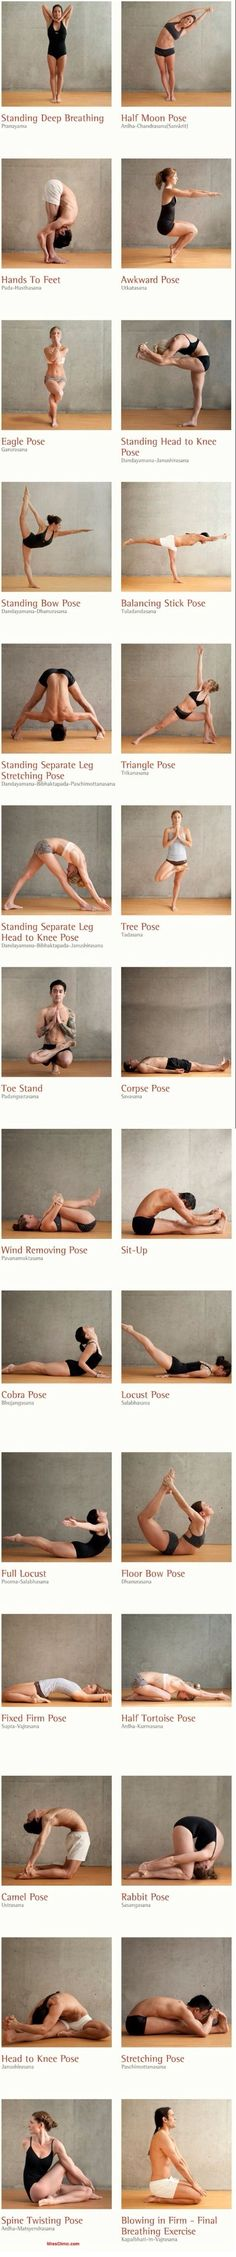 Yoga Poses - If memorizing names take the sanscrit names; I've seen some vastly different English names for some of these asanas than the names given and would do more research.